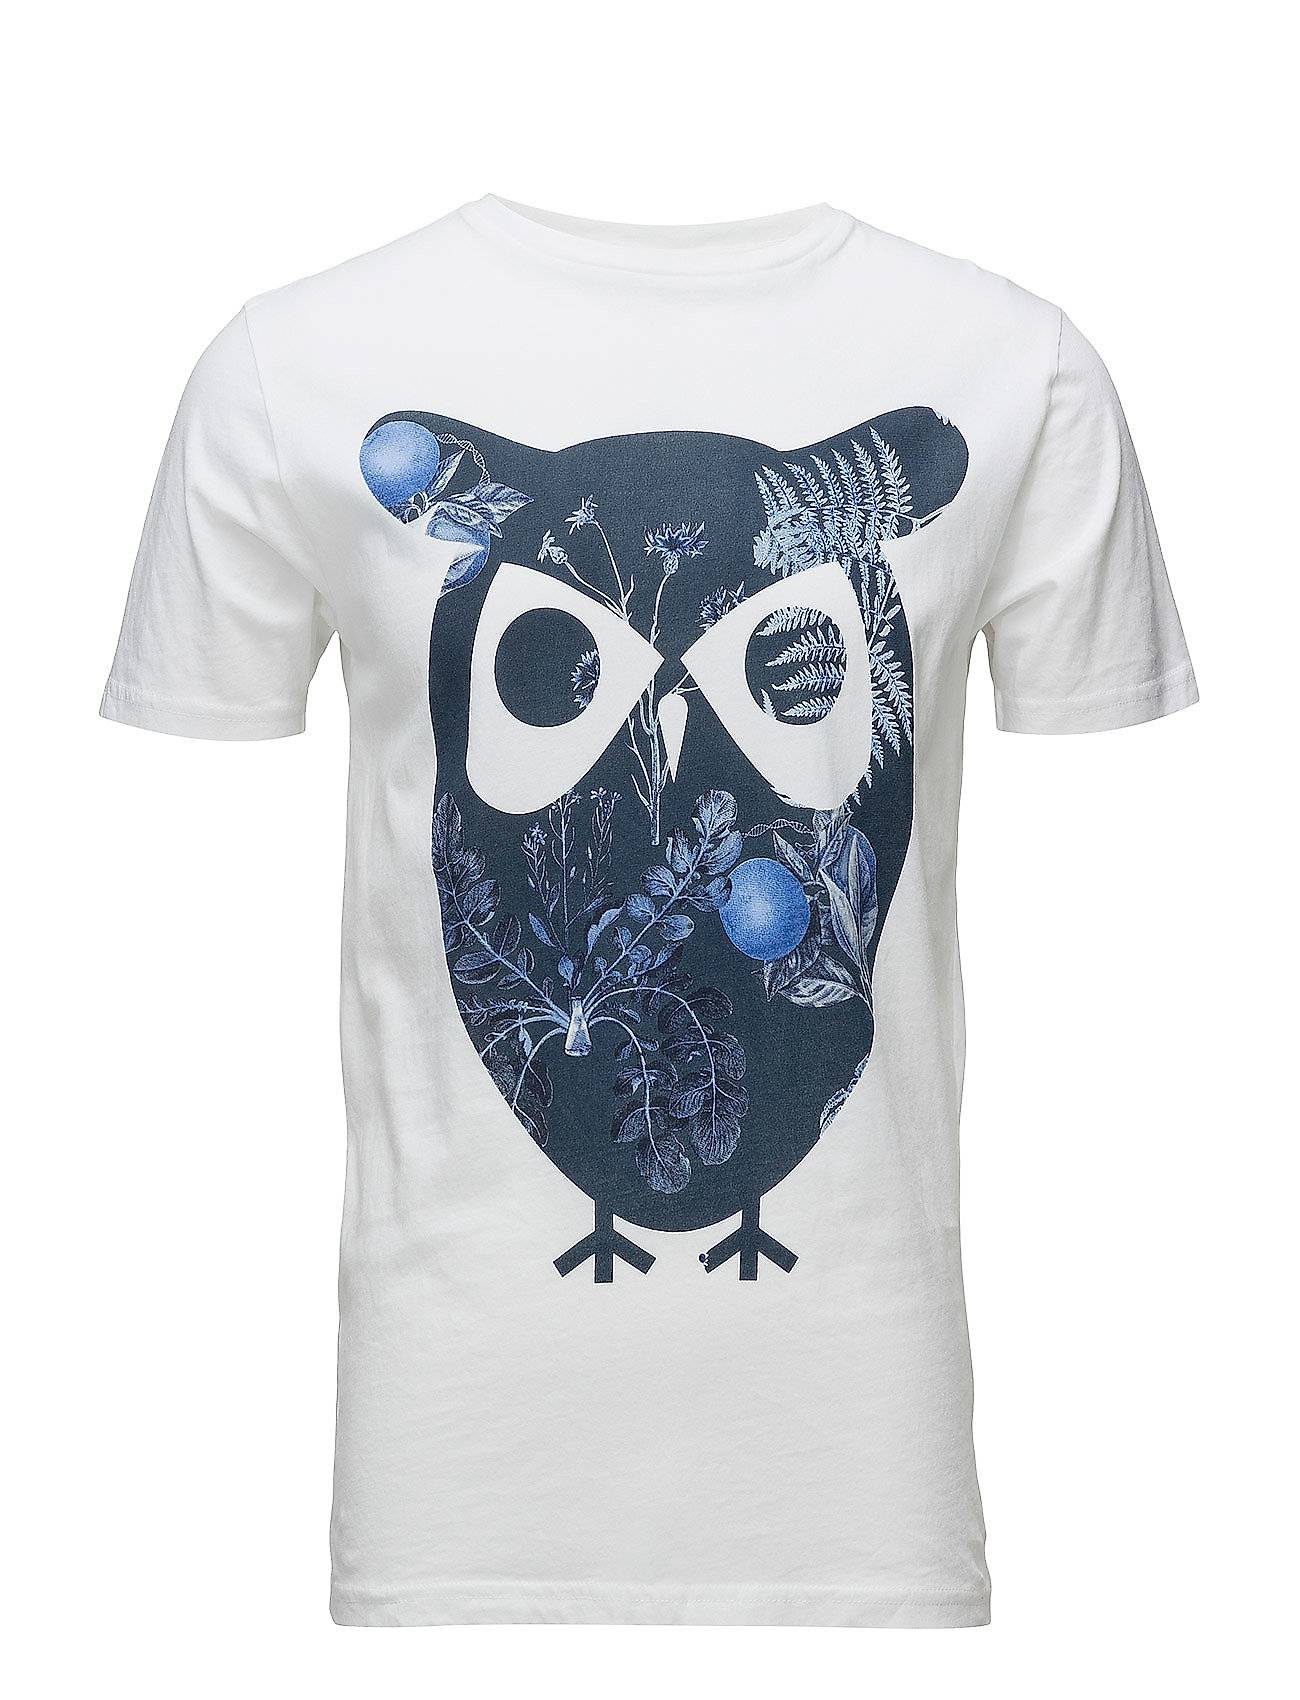 Knowledge Cotton Apparel T-Shirt With Owl Print - Gots